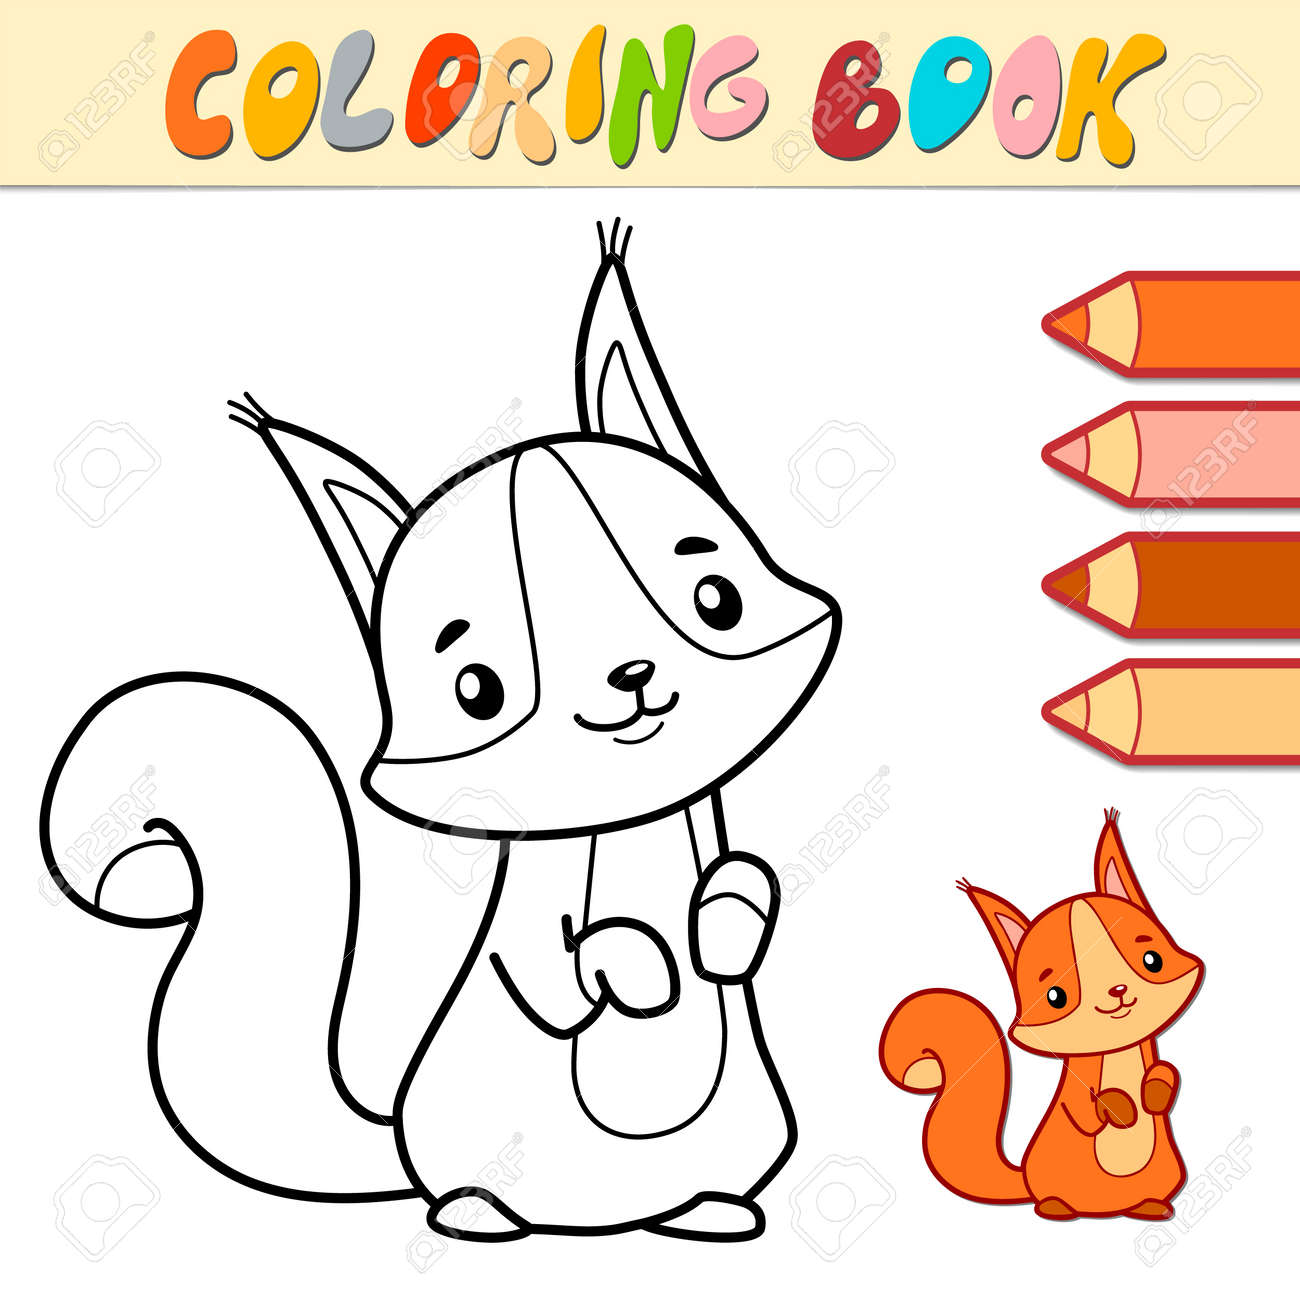 Coloring book or page for kids. squirrel black and white vector illustration - 168778520